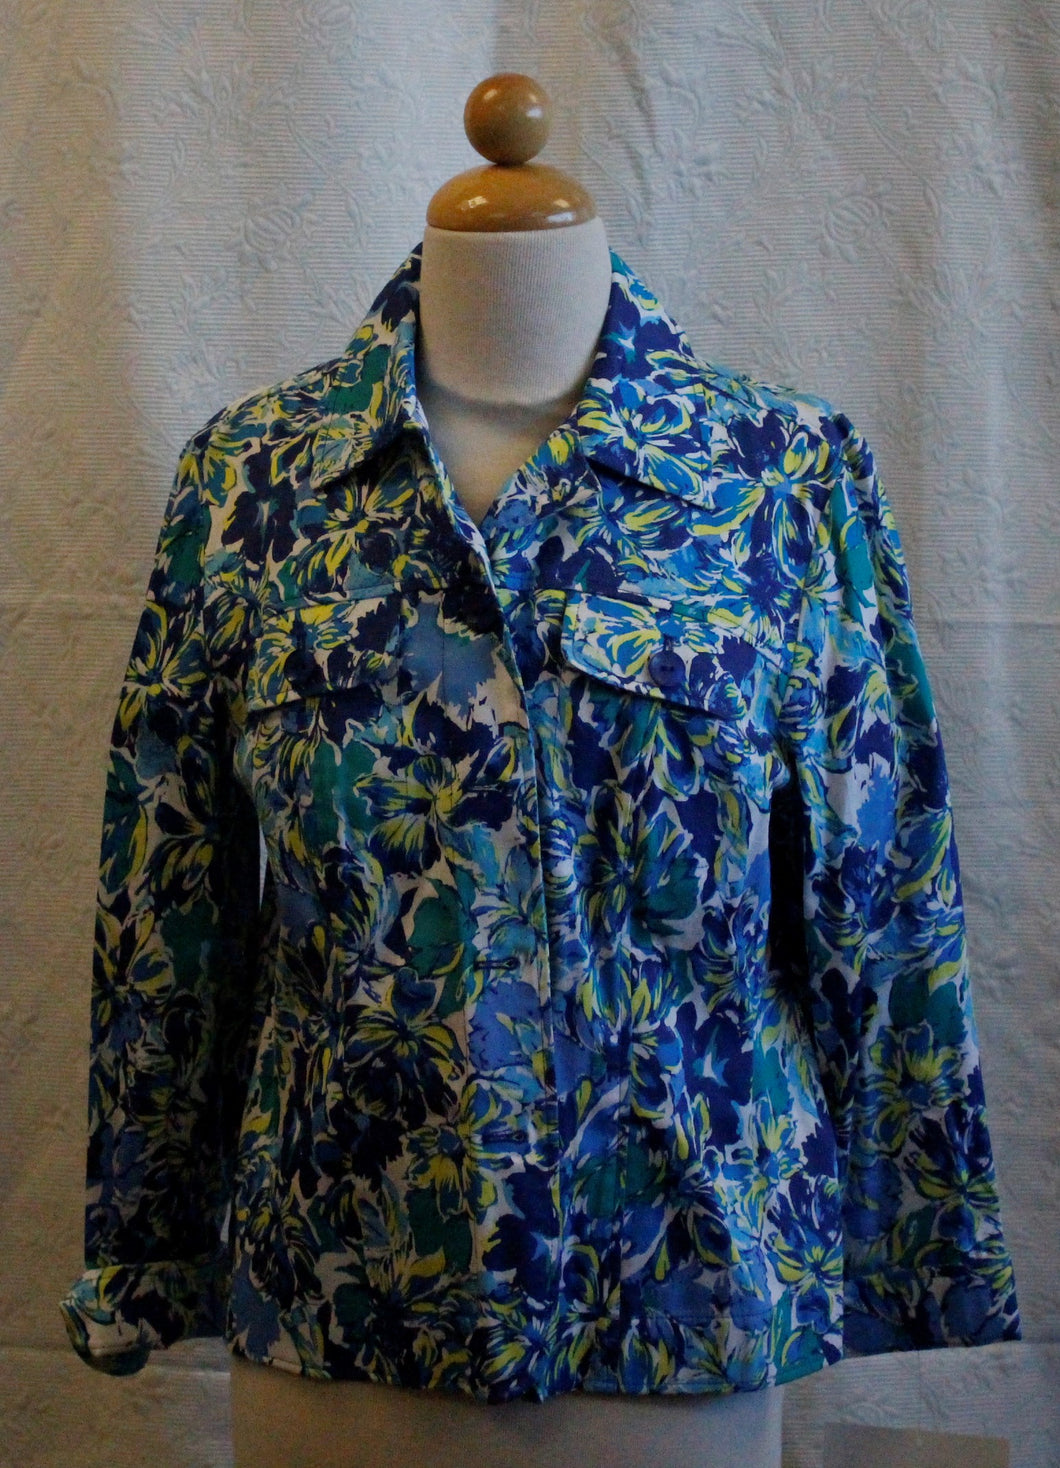 Women's Blue/Yellow/White Floral Jacket     M(P)                                         1/27A